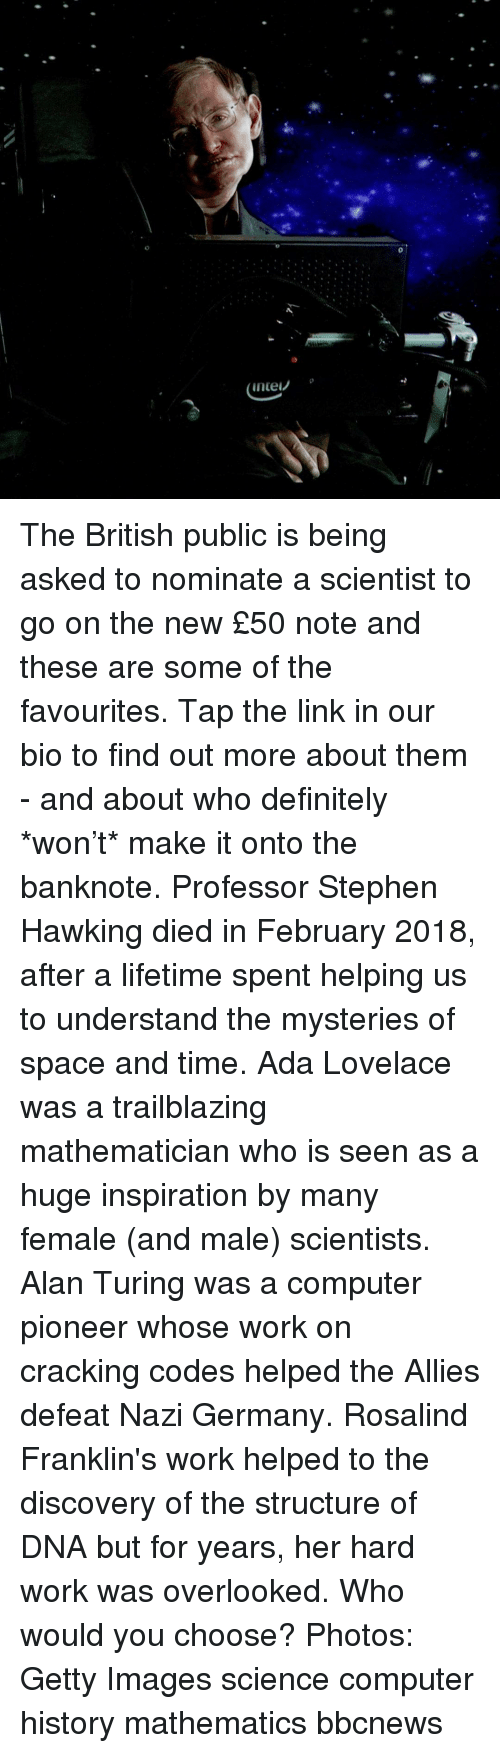 Definitely, Memes, and Stephen: The British public is being asked to nominate a scientist to go on the new £50 note and these are some of the favourites. Tap the link in our bio to find out more about them - and about who definitely *won't* make it onto the banknote. Professor Stephen Hawking died in February 2018, after a lifetime spent helping us to understand the mysteries of space and time. Ada Lovelace was a trailblazing mathematician who is seen as a huge inspiration by many female (and male) scientists. Alan Turing was a computer pioneer whose work on cracking codes helped the Allies defeat Nazi Germany. Rosalind Franklin's work helped to the discovery of the structure of DNA but for years, her hard work was overlooked. Who would you choose? Photos: Getty Images science computer history mathematics bbcnews